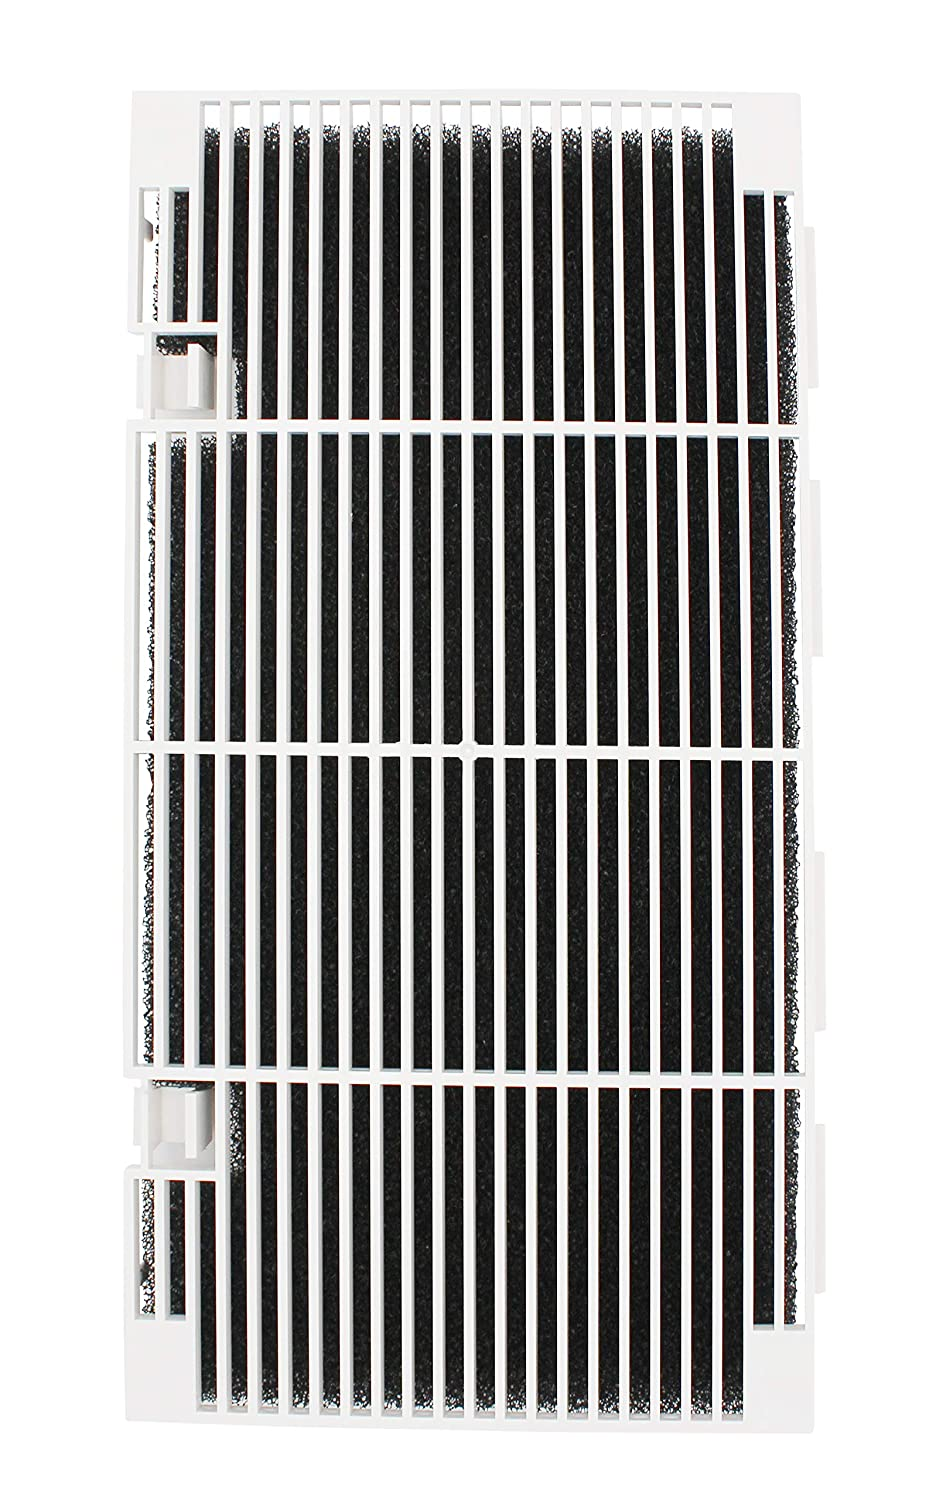 RV A/C Ducted Air Grille Duo-Therm Air Conditioner Grille Replace The Dometic #3104928.019 Air Filter pad Assembly - Polar White. WeHope